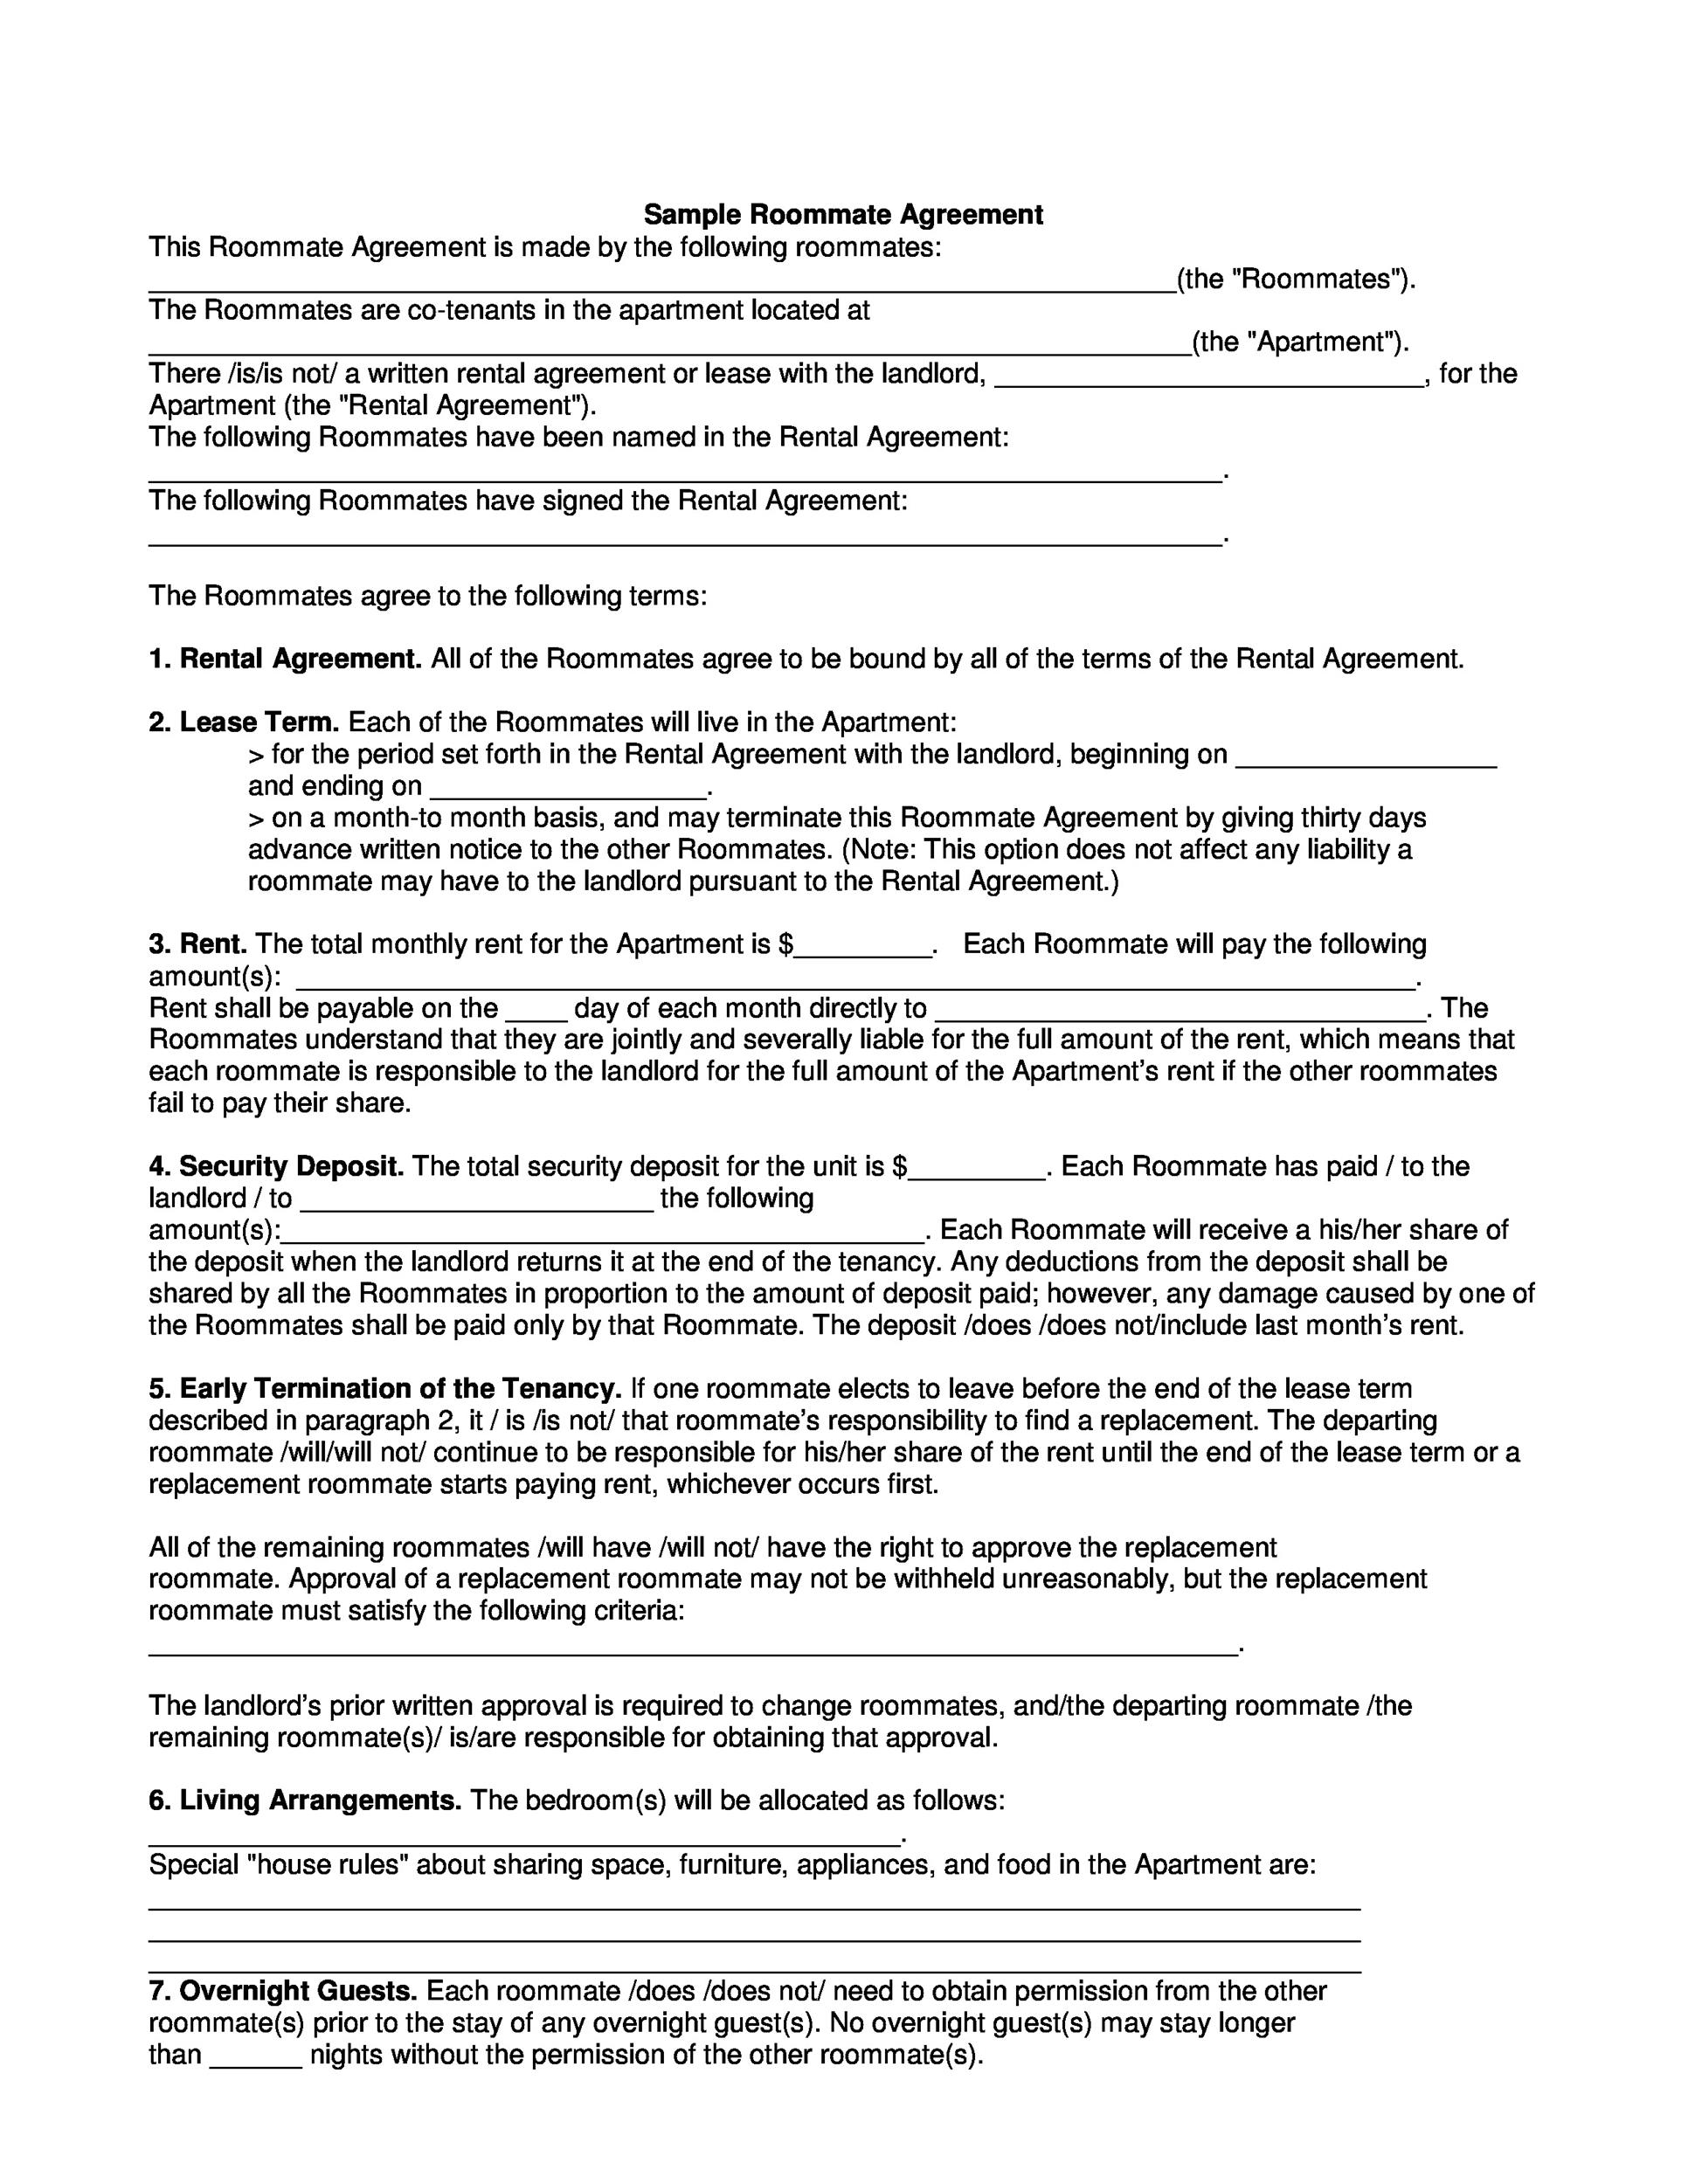 roommate agreement template 27. 40  Free Roommate Agreement Templates   Forms  Word  PDF